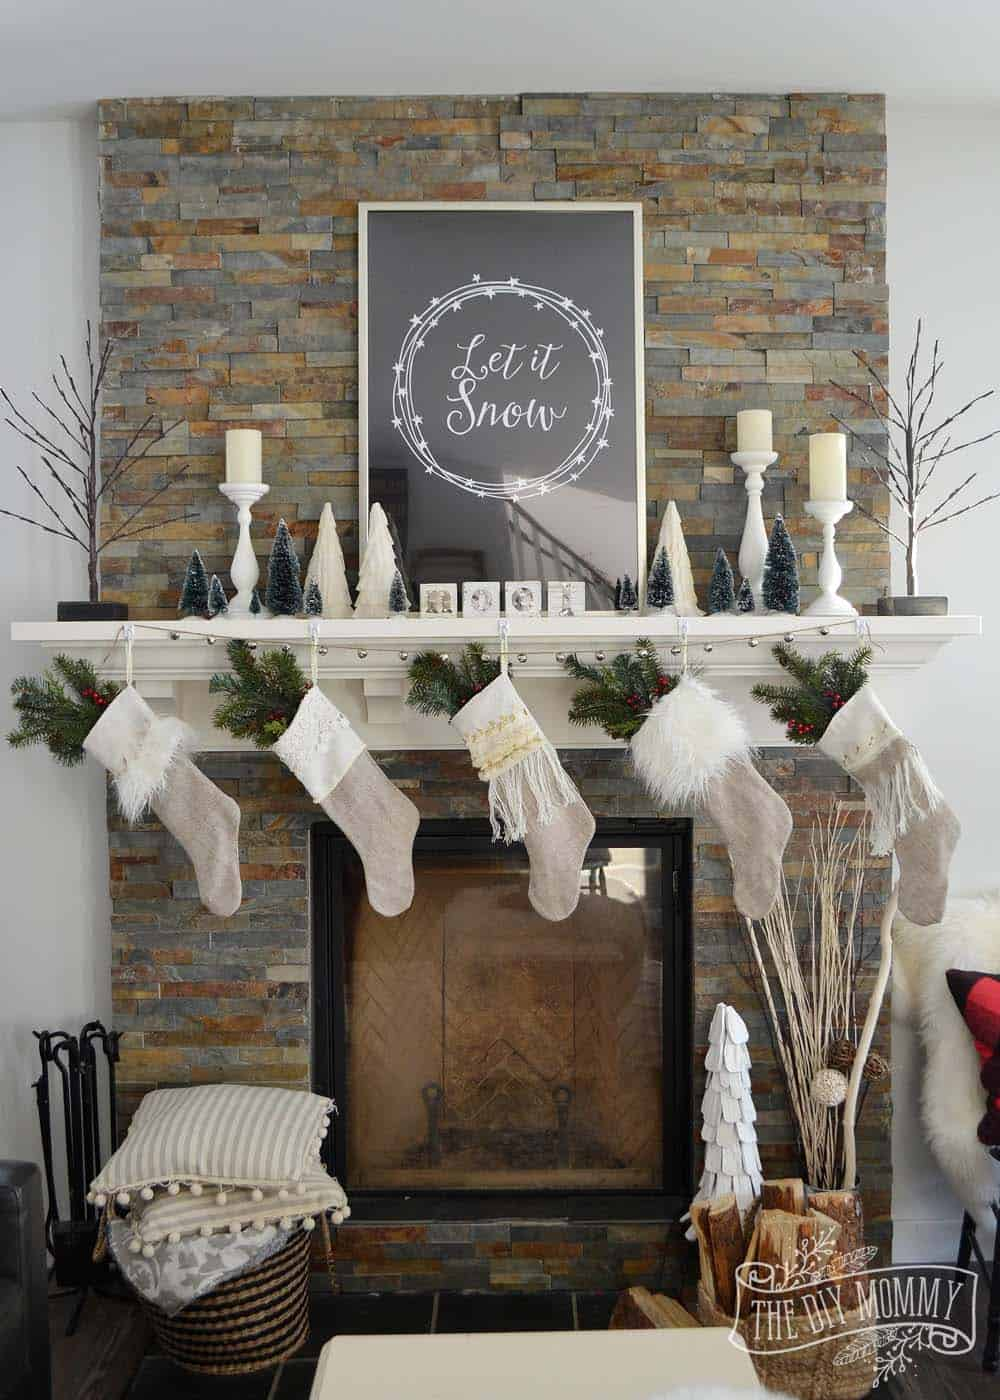 Living Rooms Decorated With Larrge Round Coffee Tables: 30+ Fabulous Christmas Decorated Living Rooms To Inspire